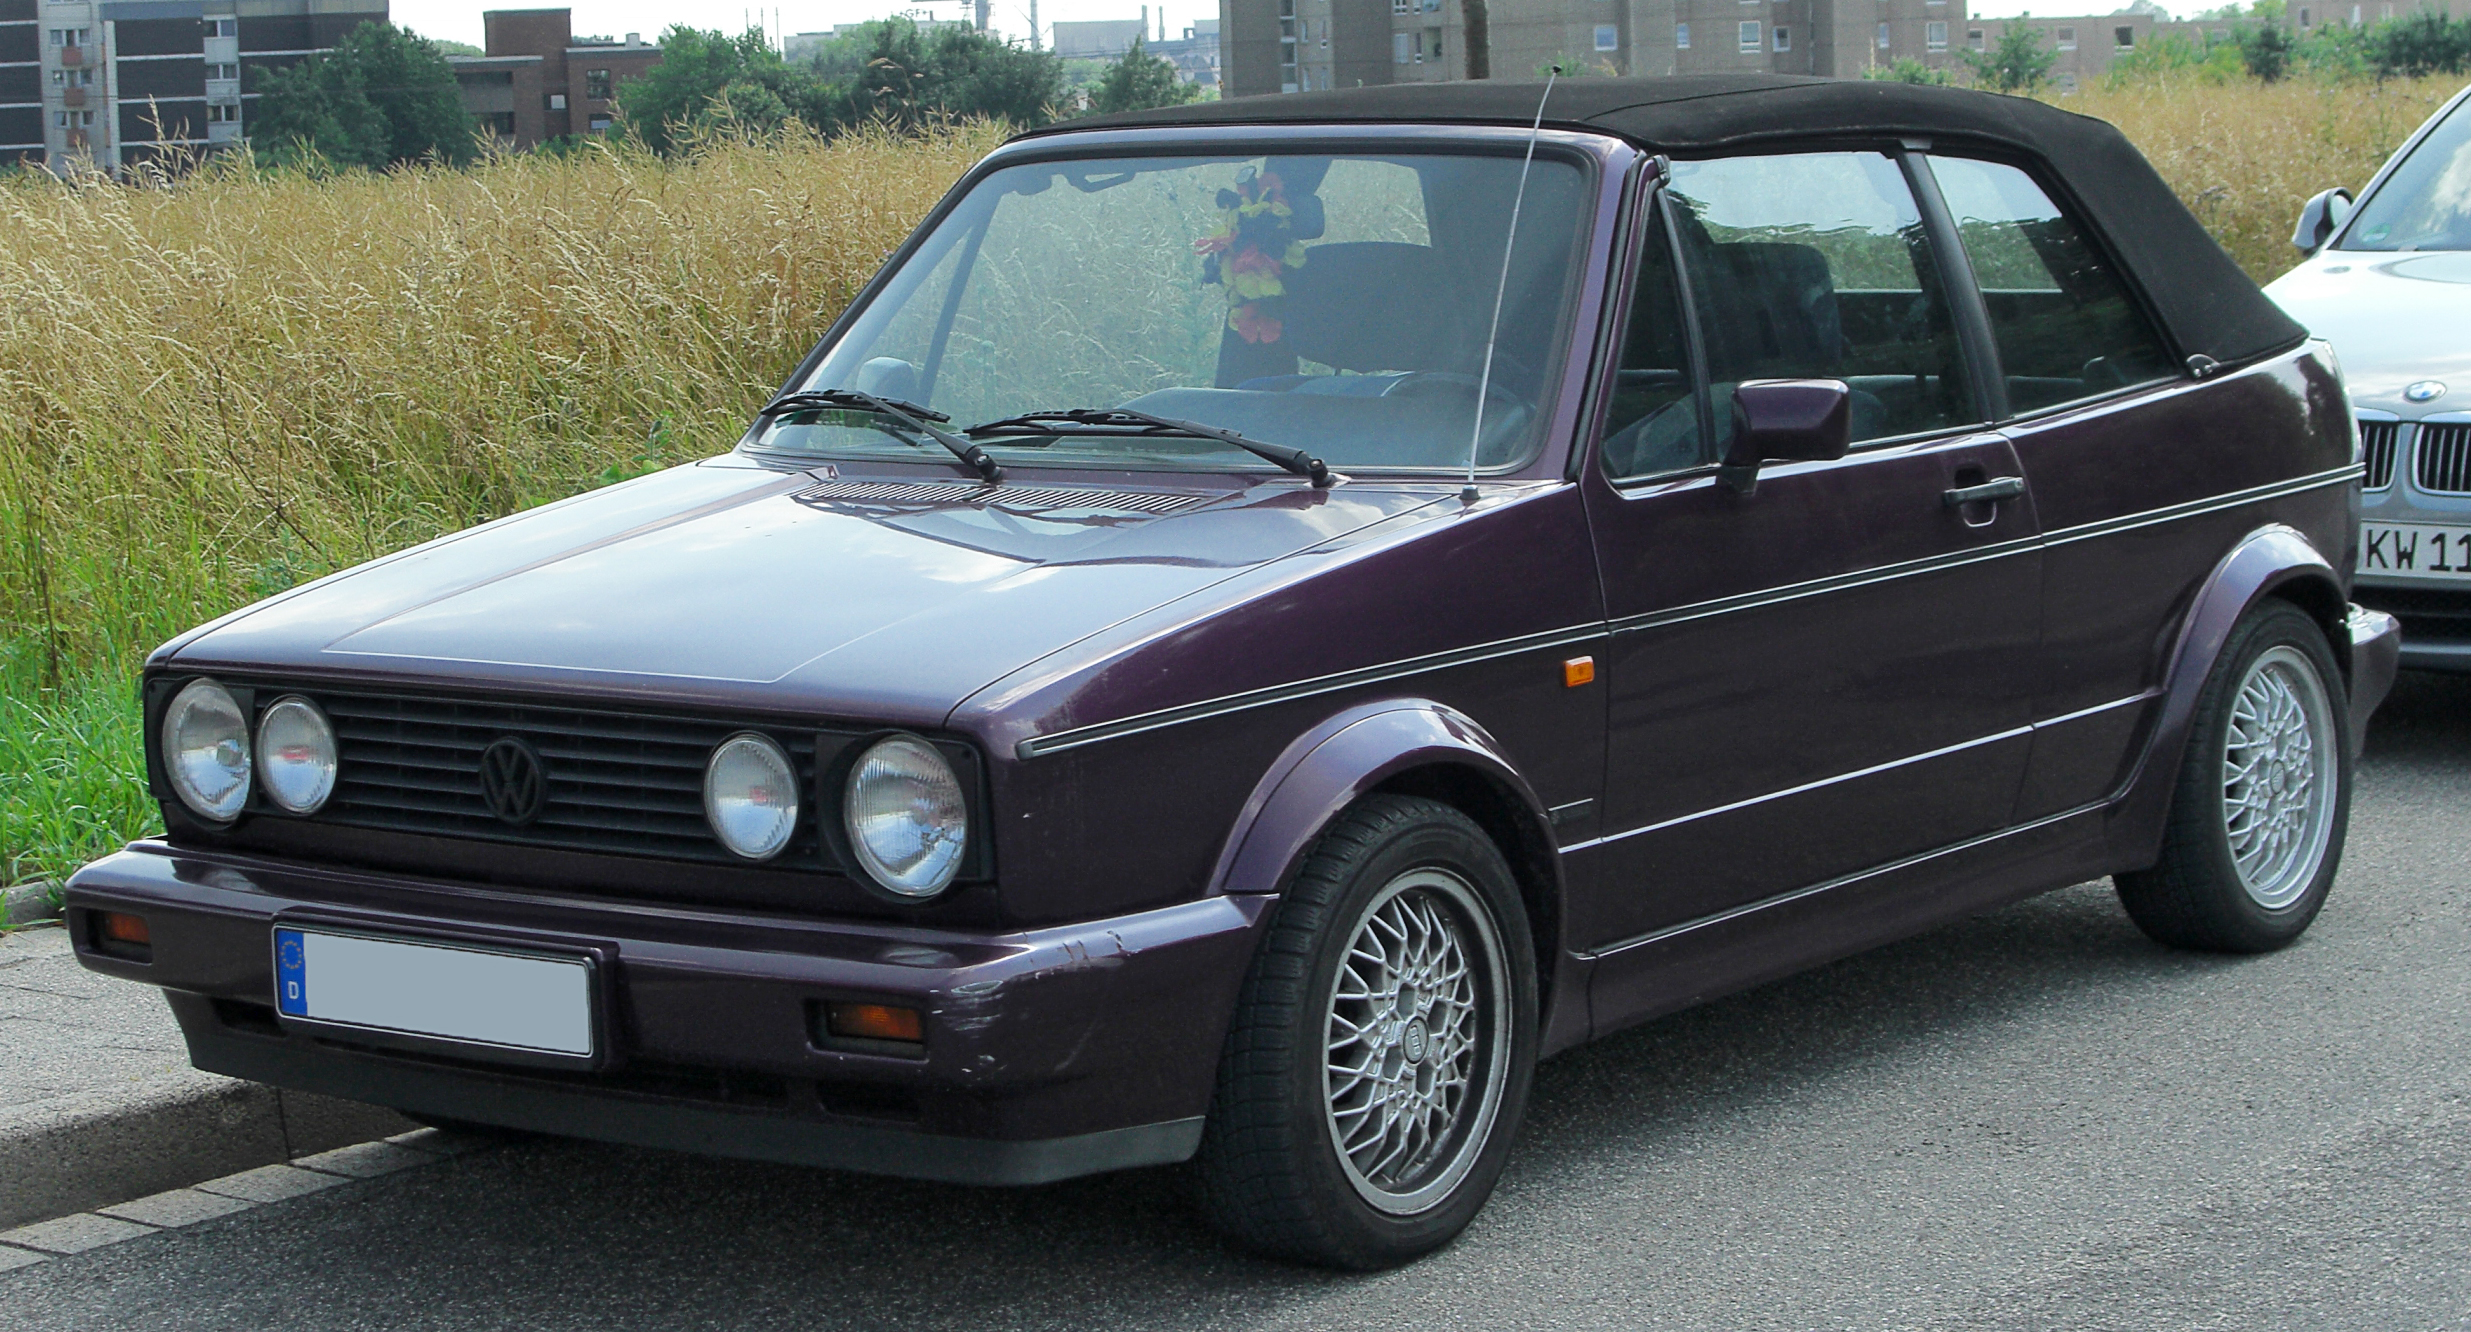 volkswagen golf mk 1 cabrio. Black Bedroom Furniture Sets. Home Design Ideas